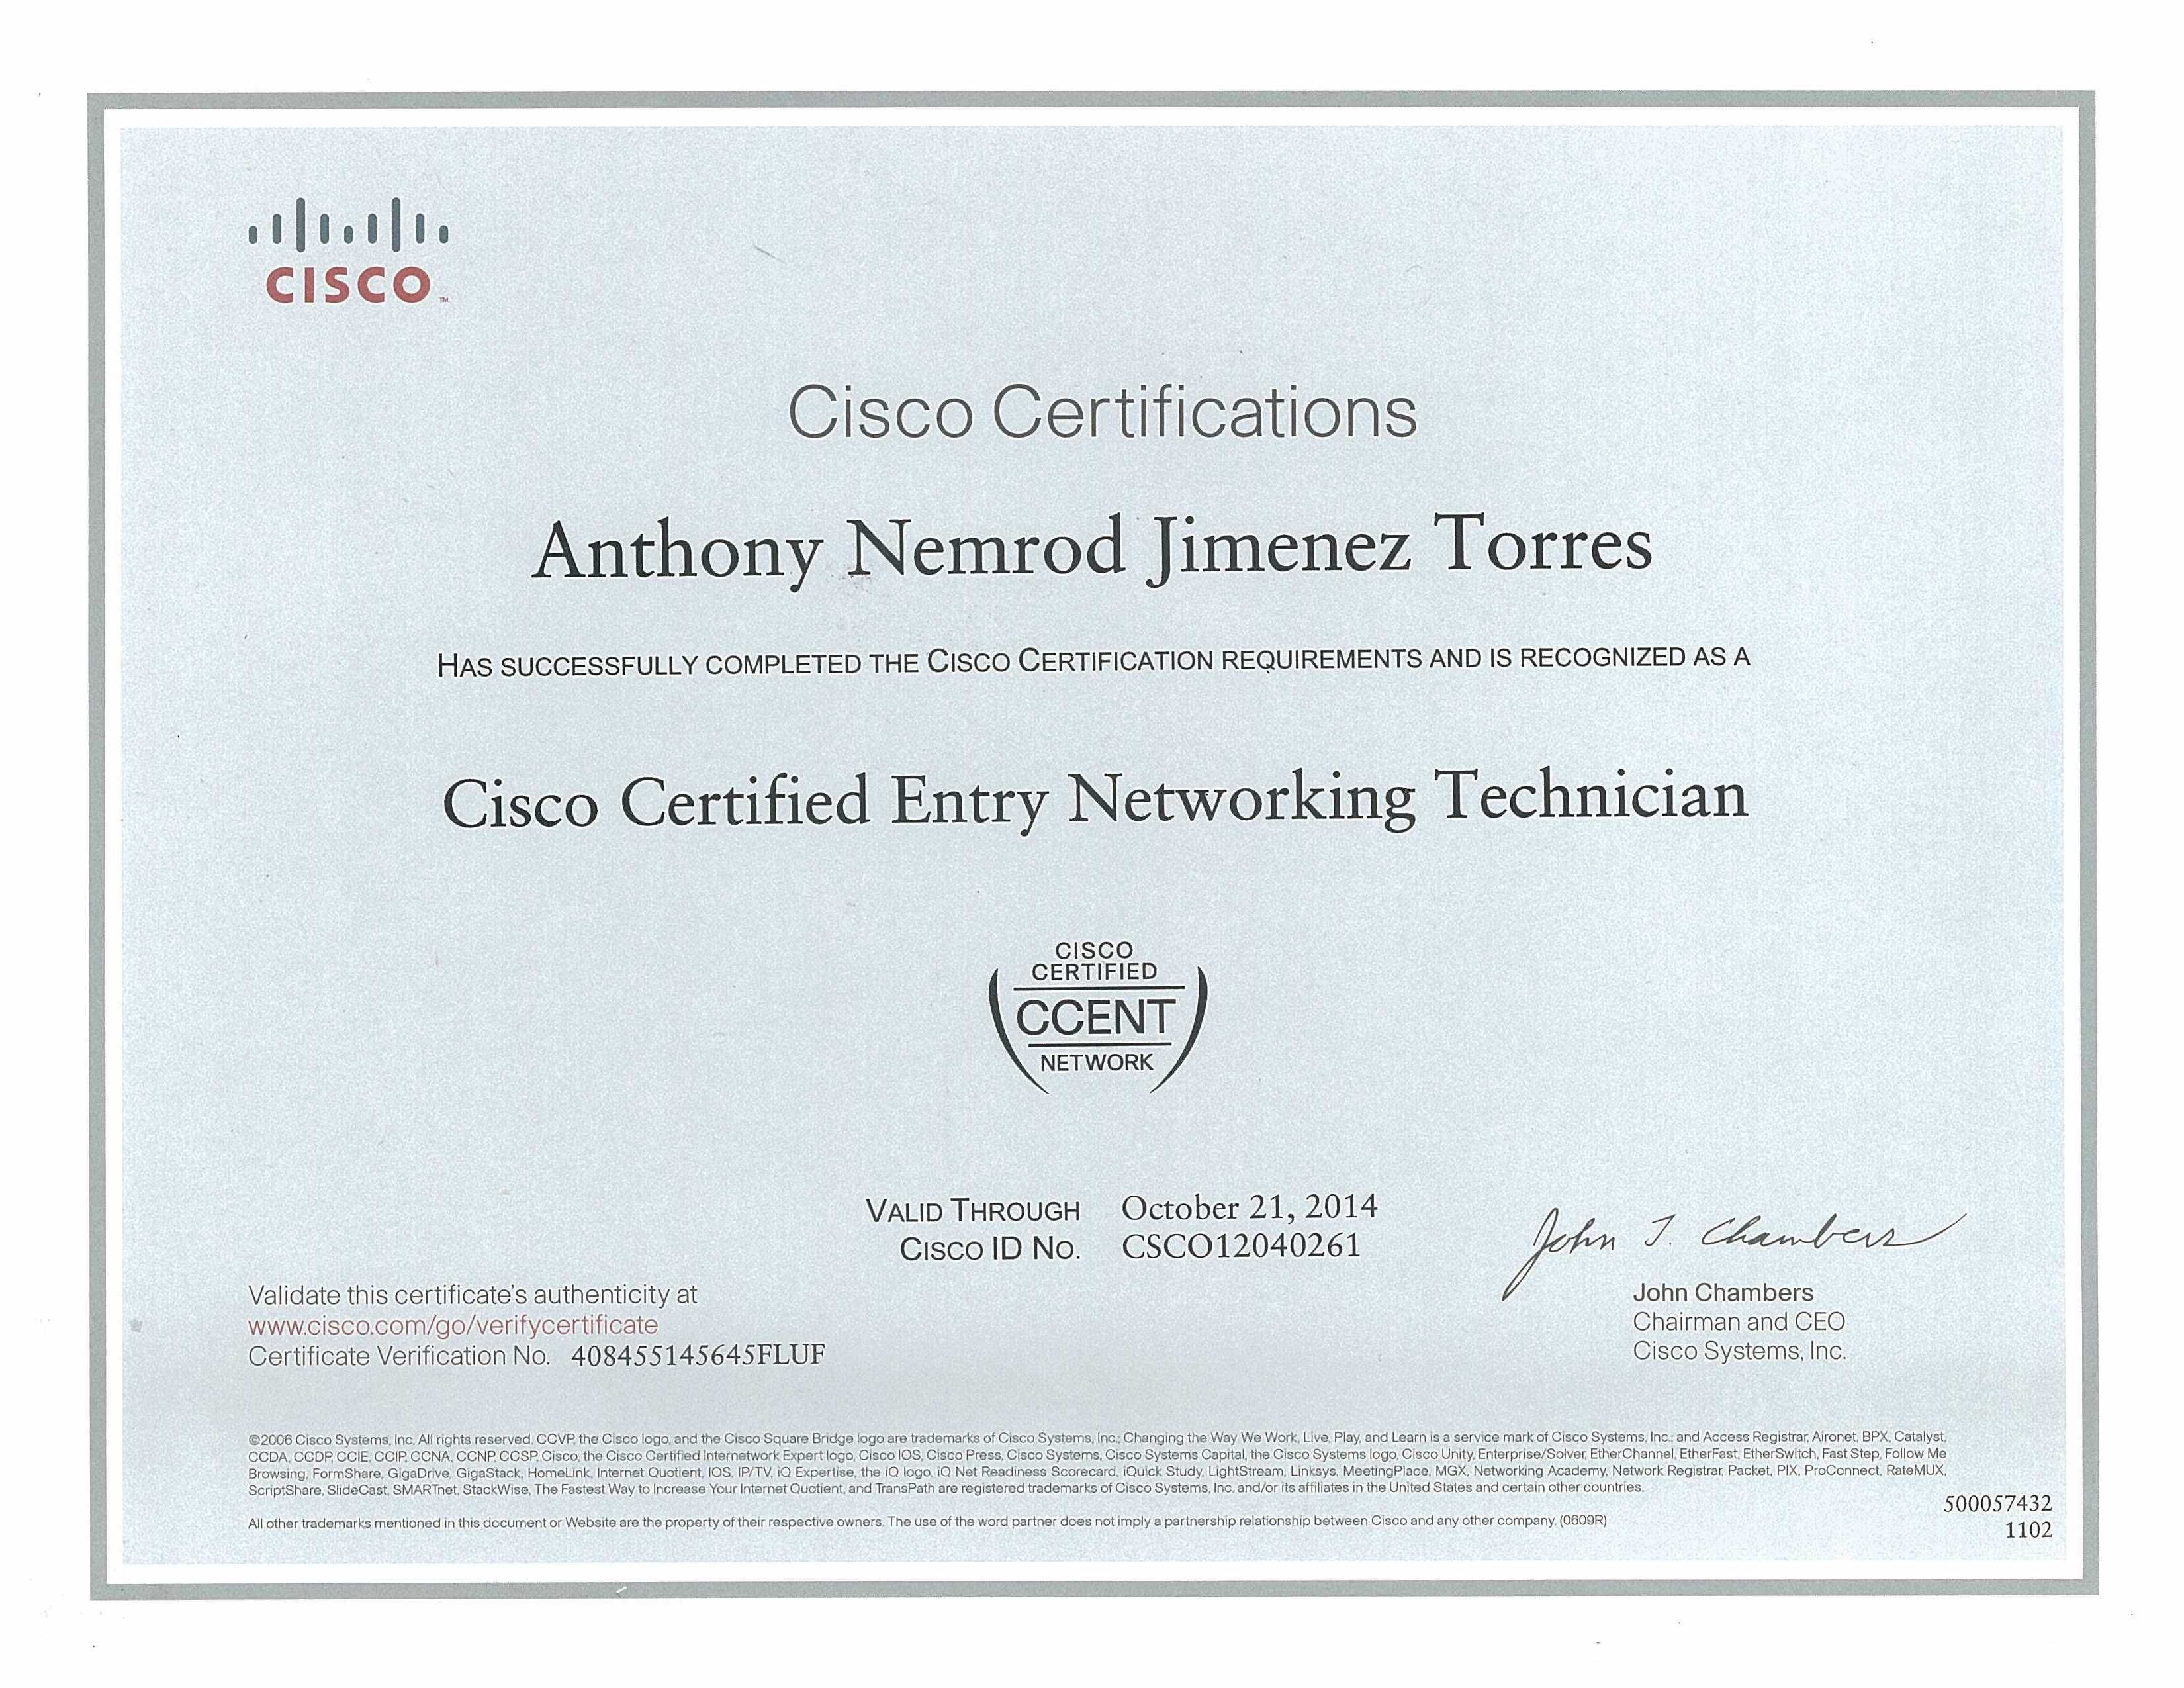 Ccent Cisco Certified Entry Networking Technician Mcse